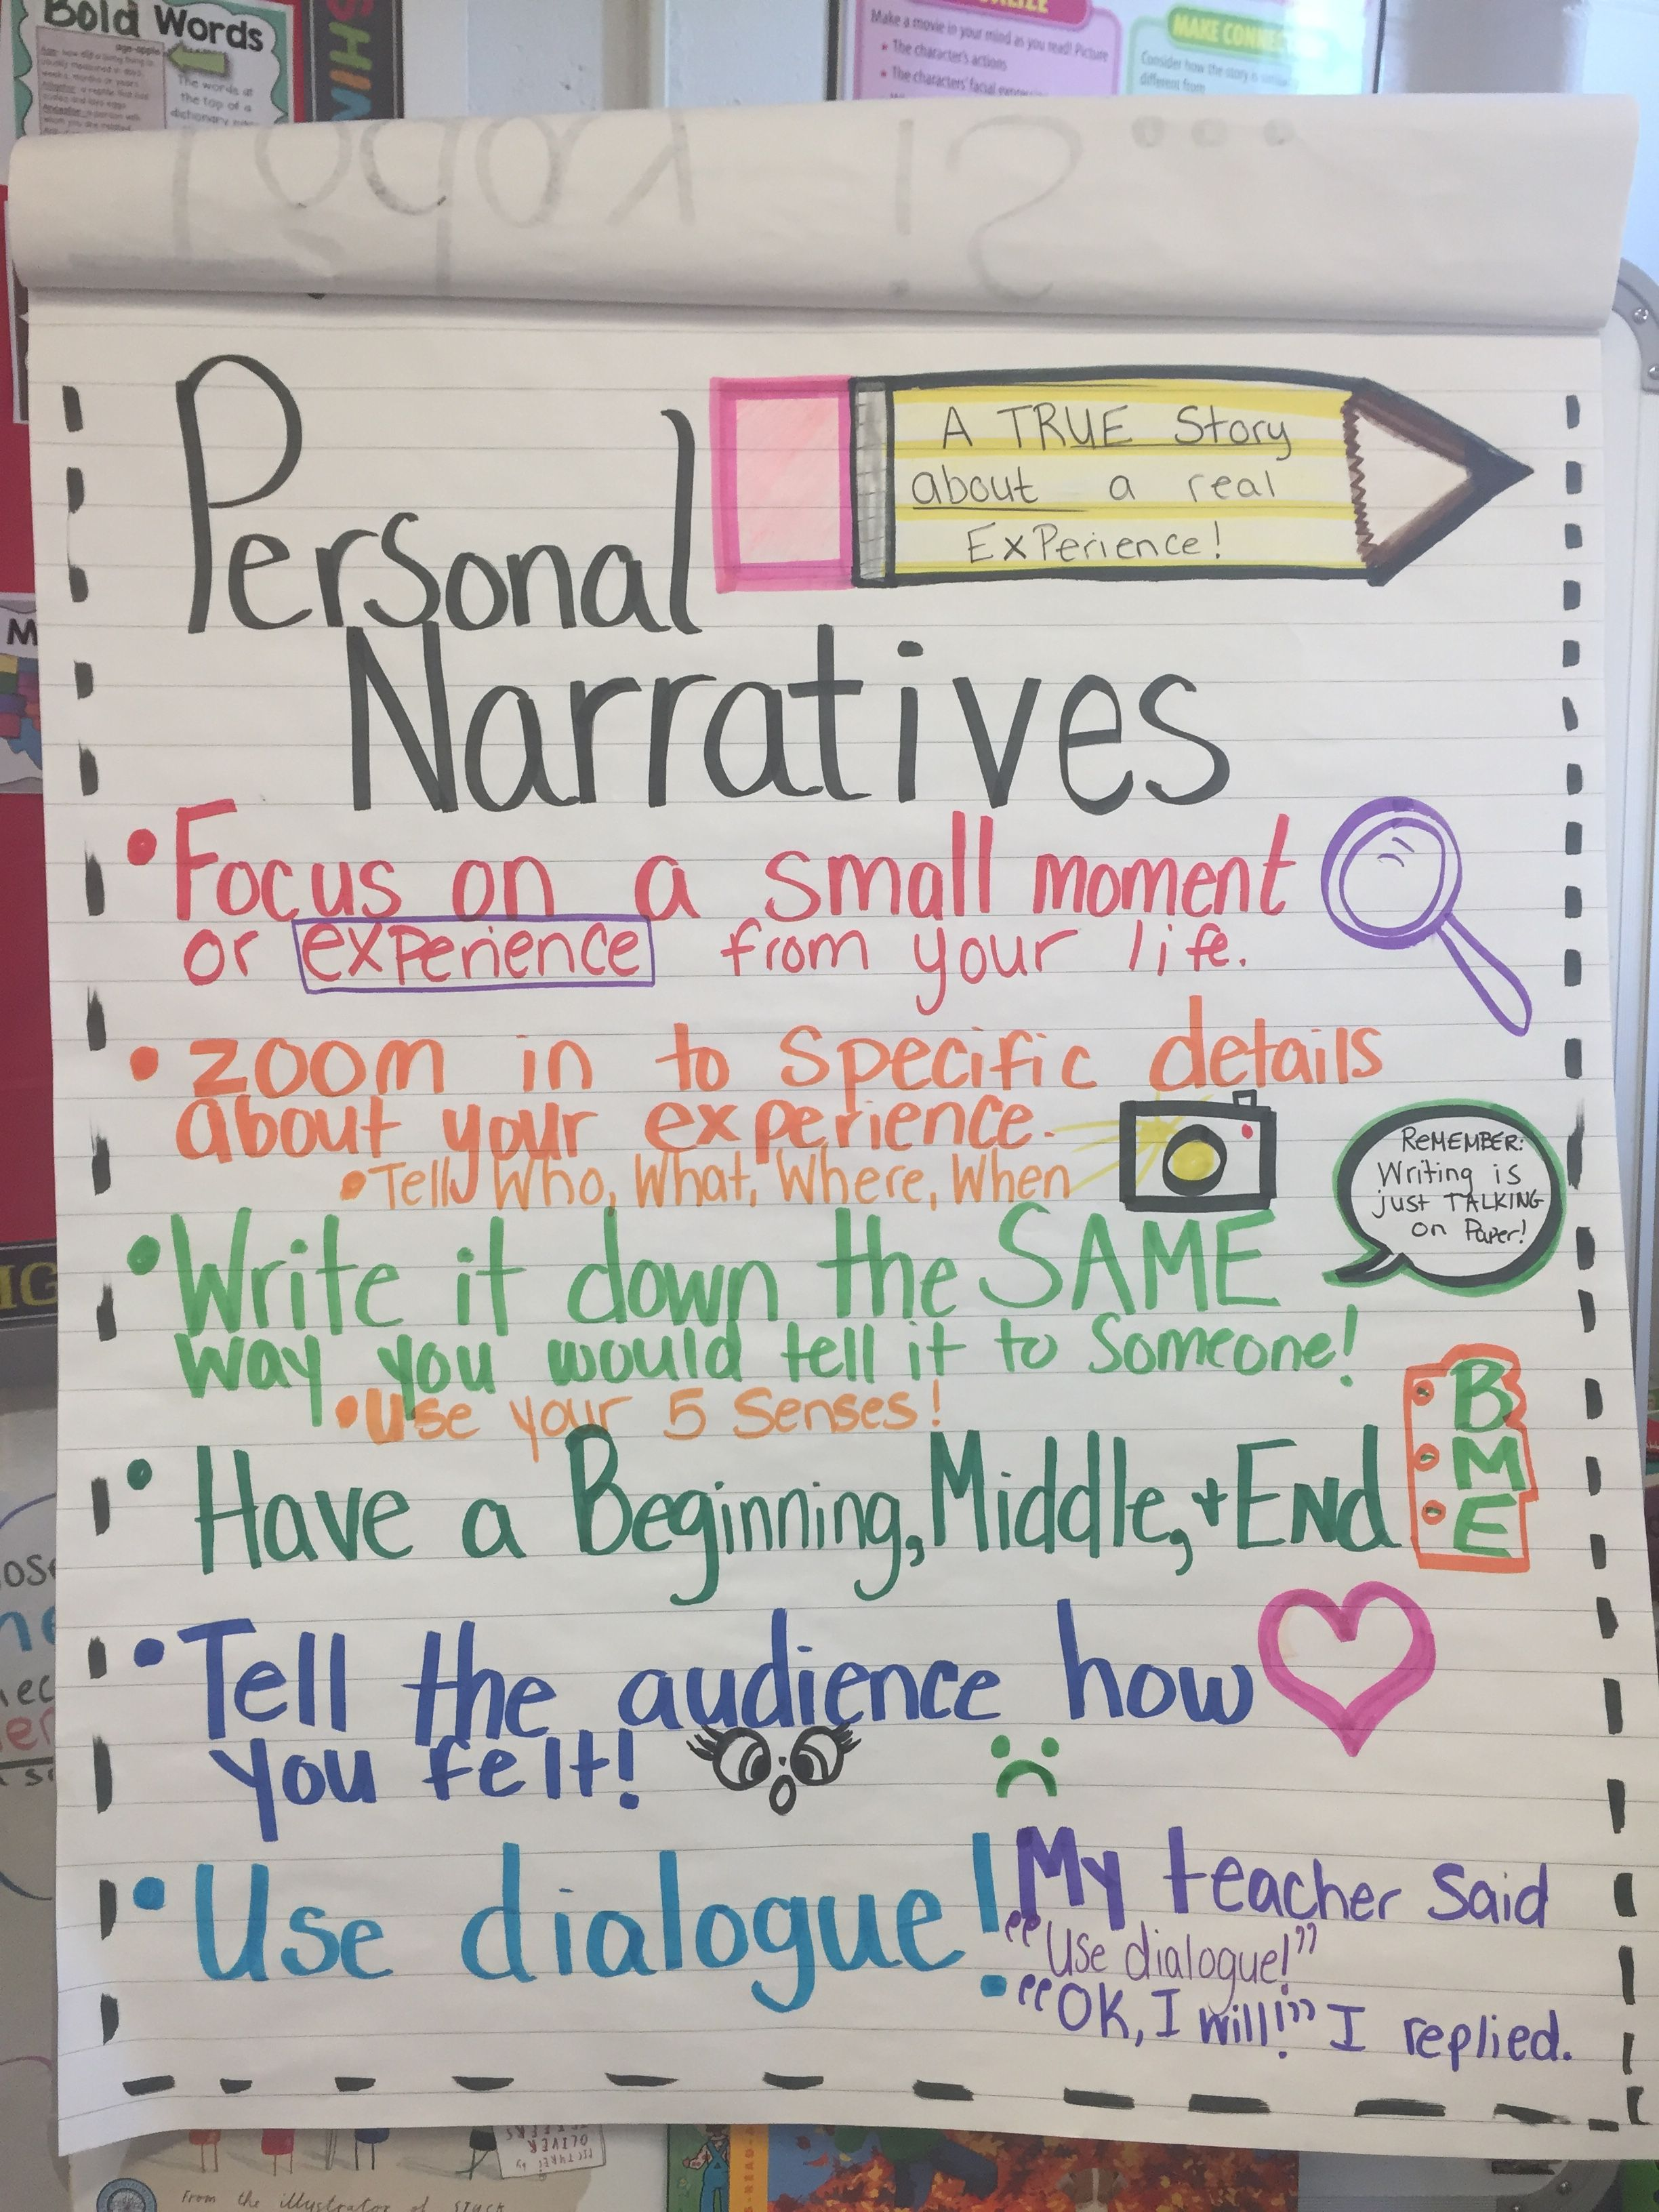 Personal Narrative Check List For Special Ed Middle School You Can Have The Kids Create Their Own Mini Anchor Charts With Pictures To Keep In Their Writers No How to write personal check to someone